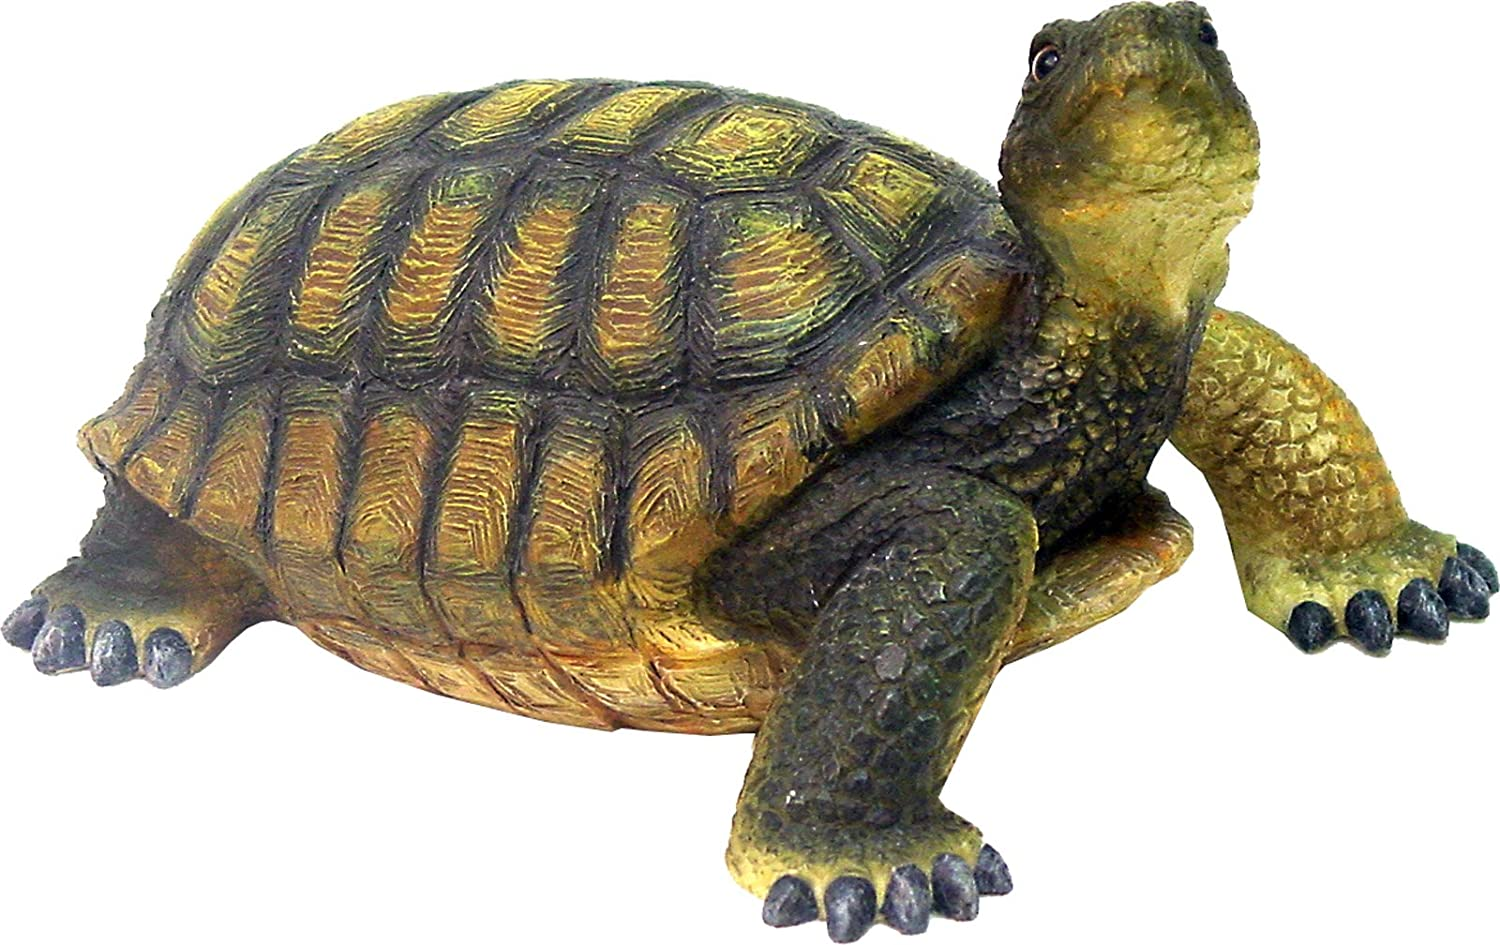 Amazon.com : Call of the Wild 89680 Turtle : Outdoor Statues ...